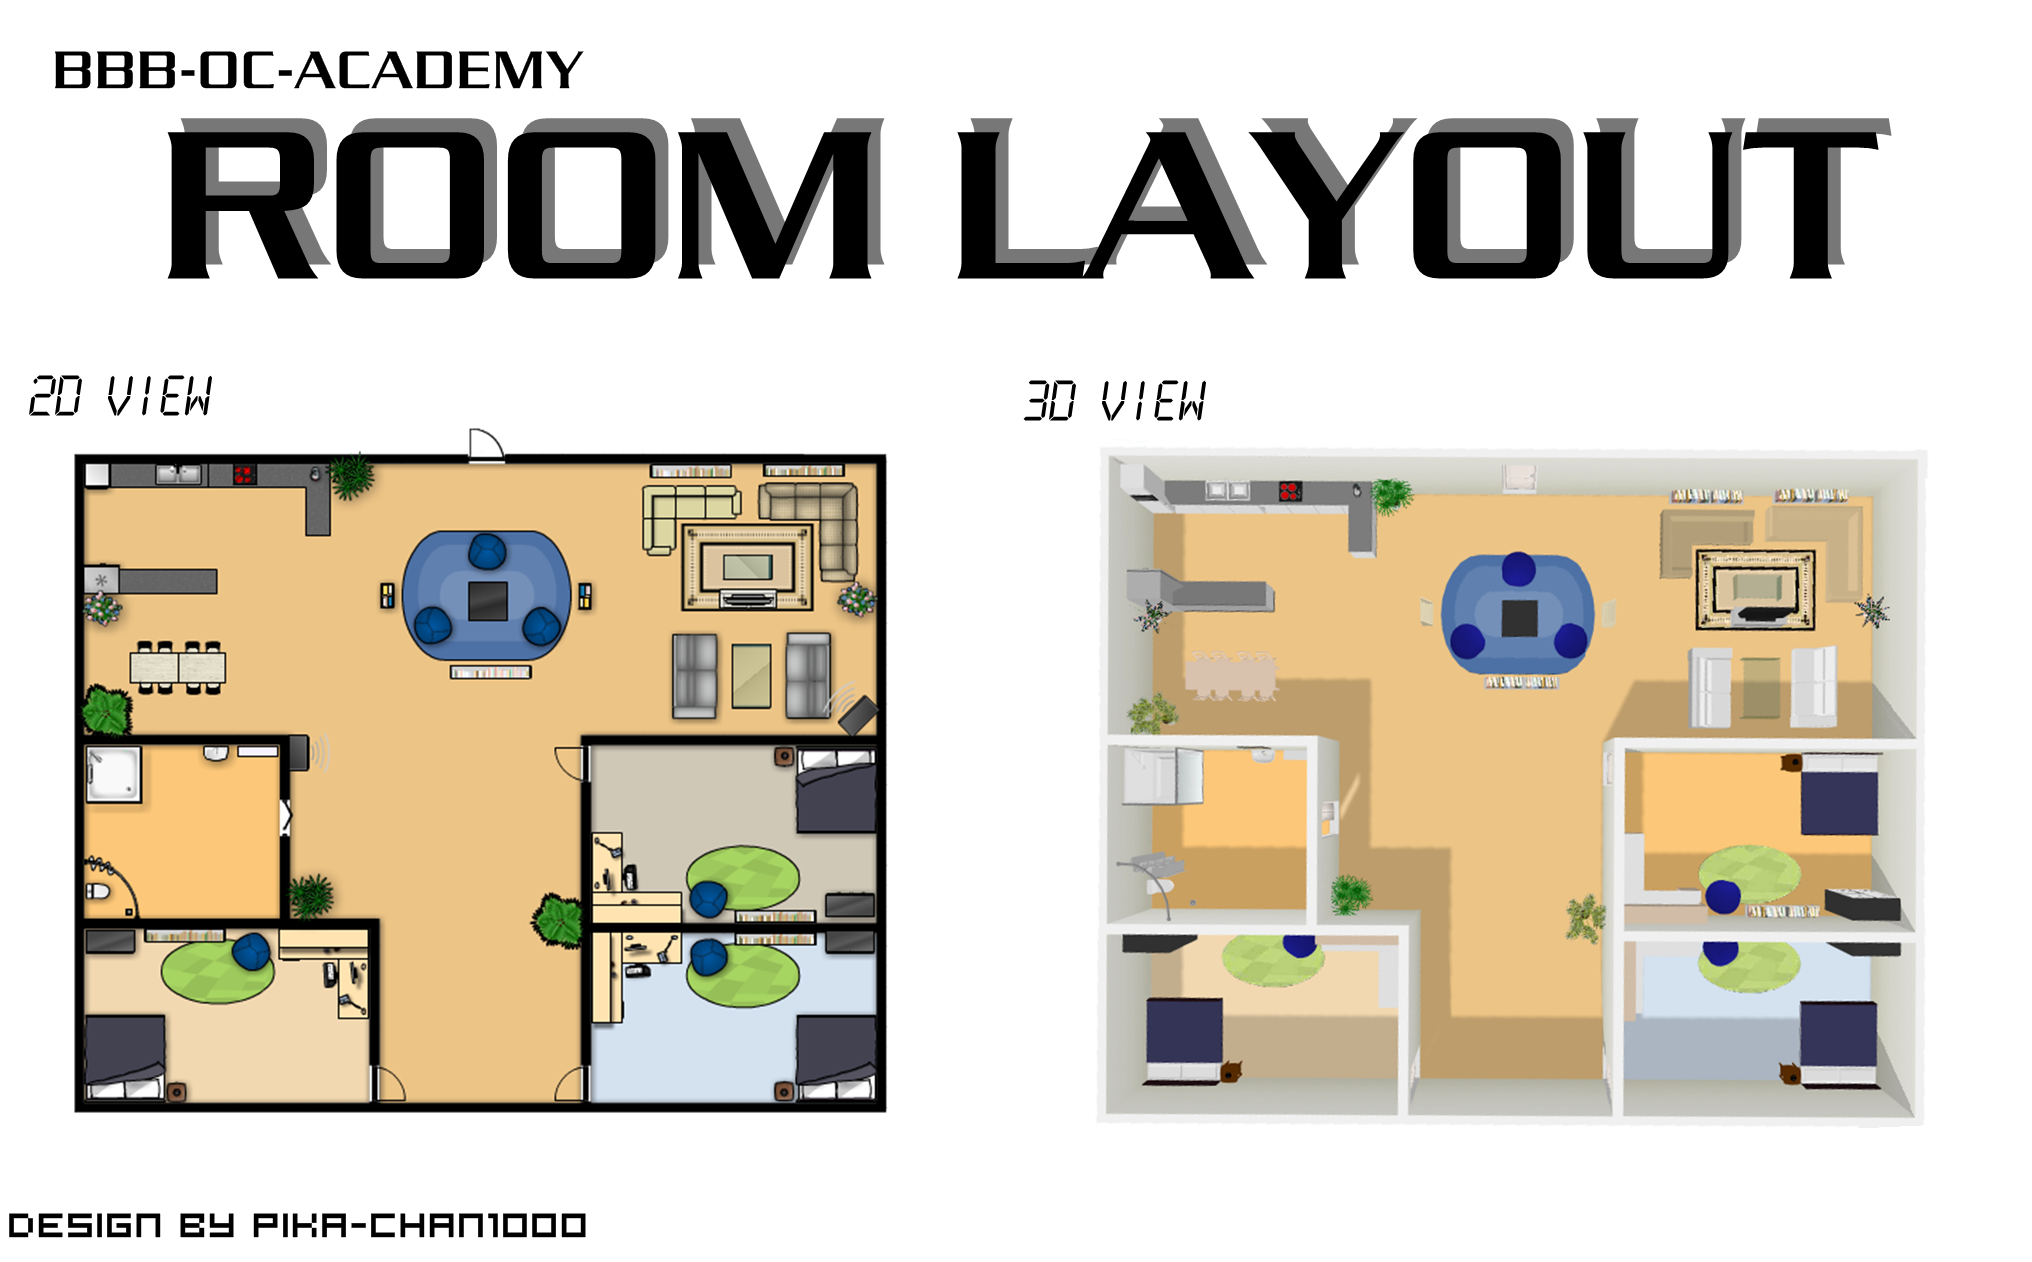 Room layout 2d and 3d by nuazka on deviantart for 3d room layout